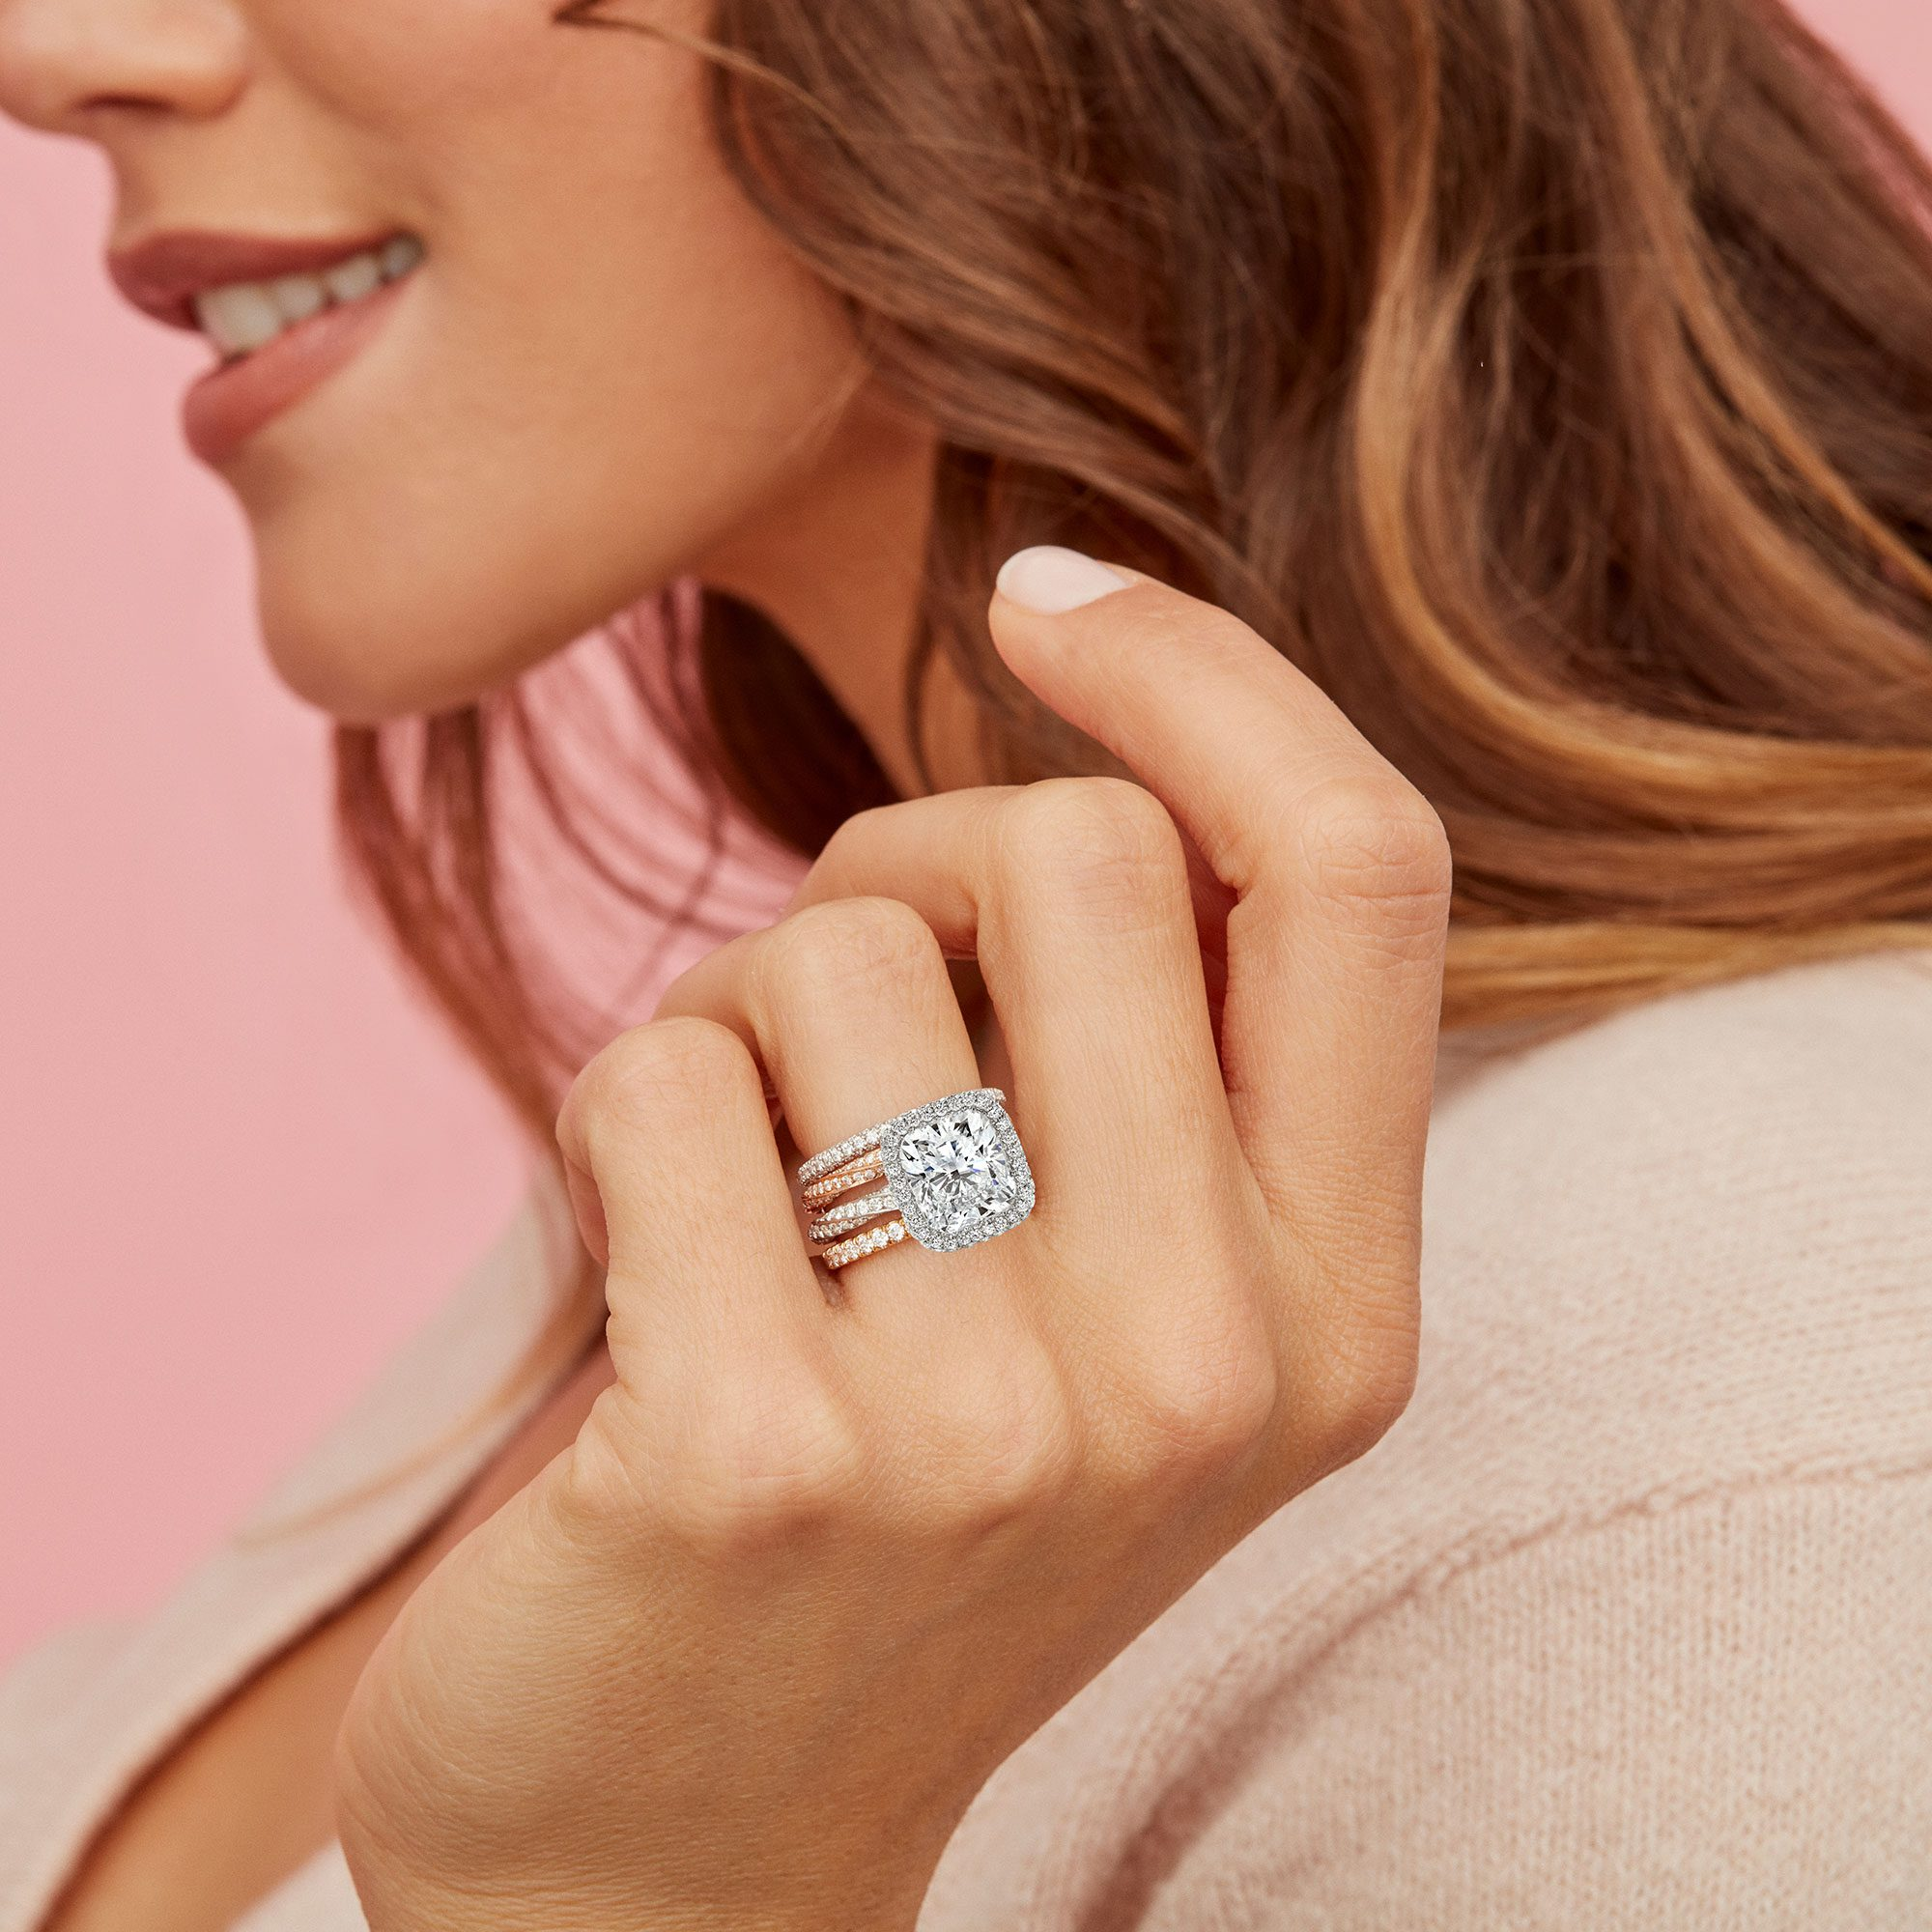 Camille Halo Lab Grown Cushion Diamond Ring on Hand Model by Oui